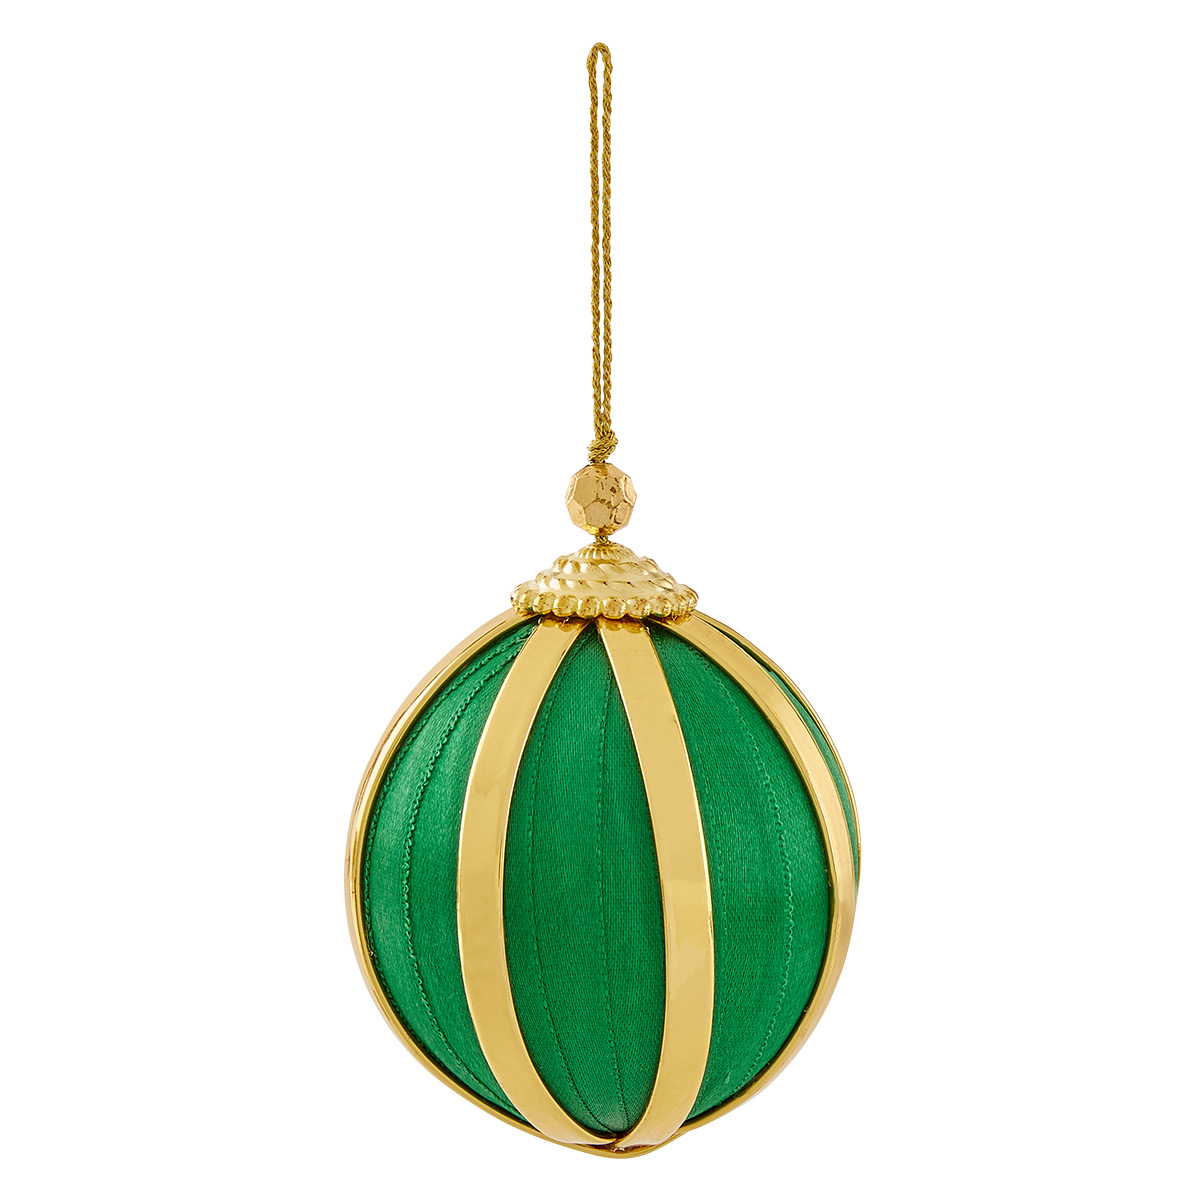 Green & Gold Ball Tie-On Ornament